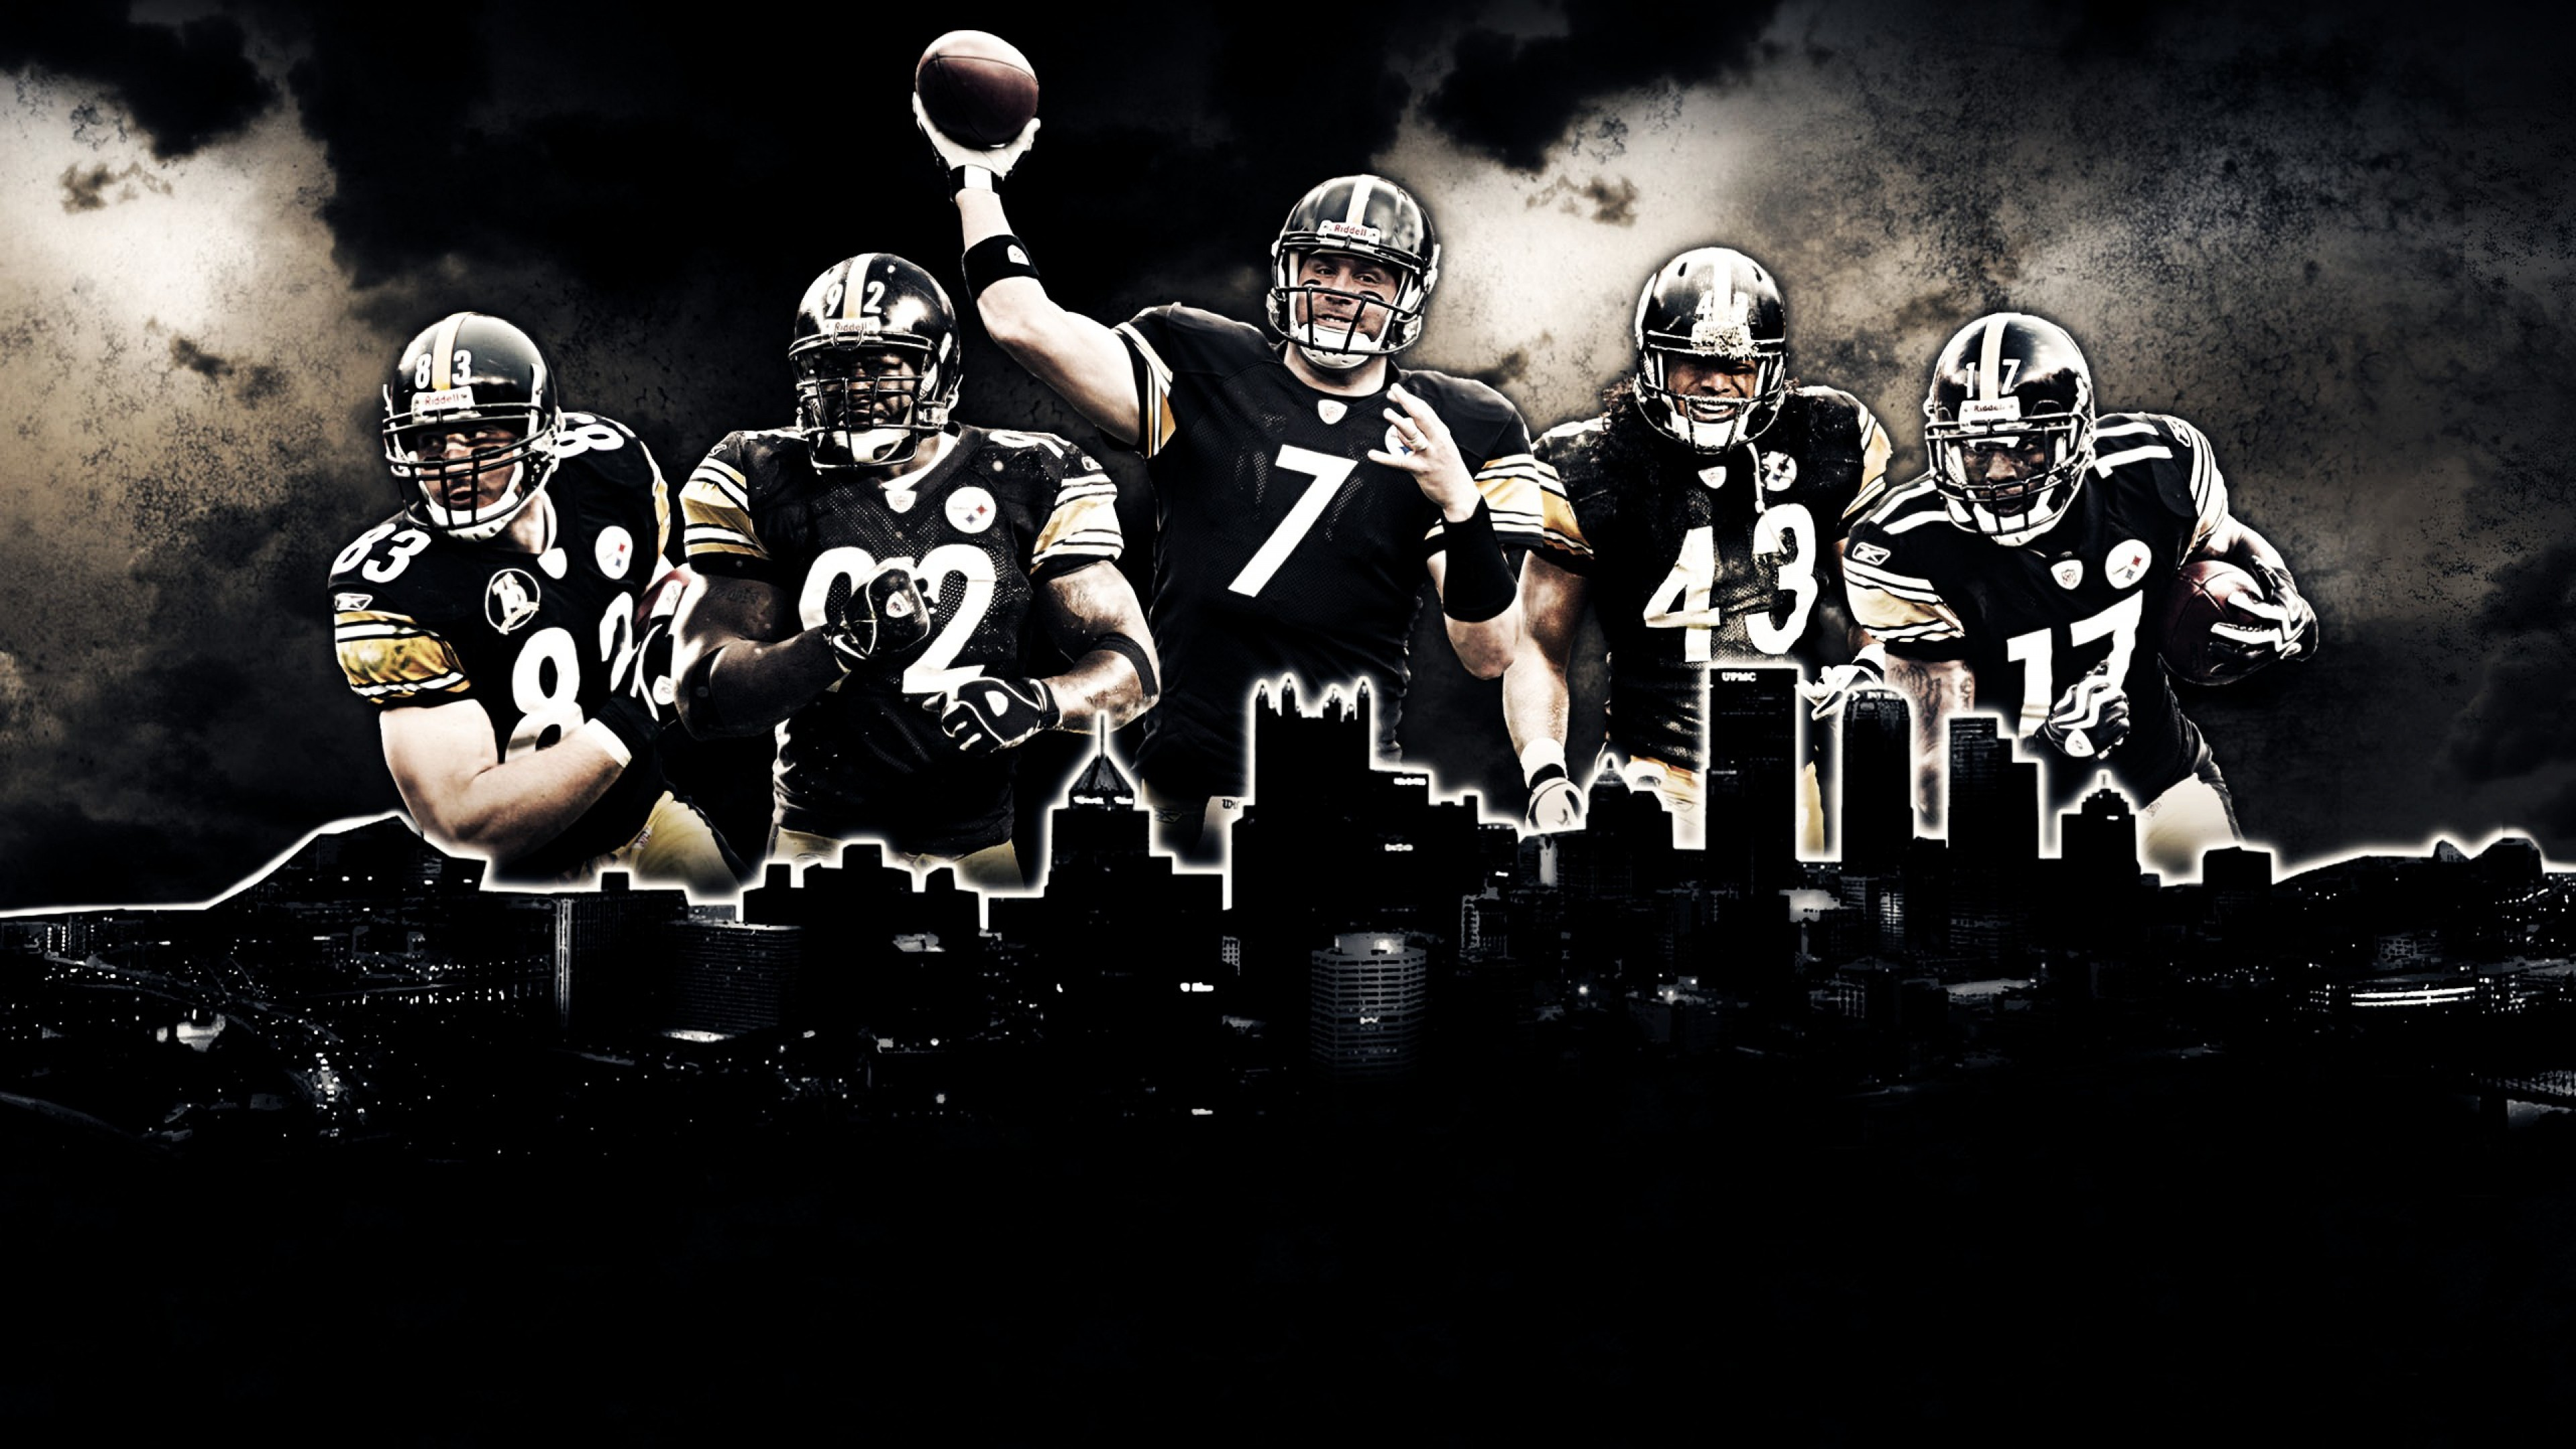 Nfl Wallpapers HD Team Pittsburgh Steelers Desktop Wallpapers HD 3840x2160